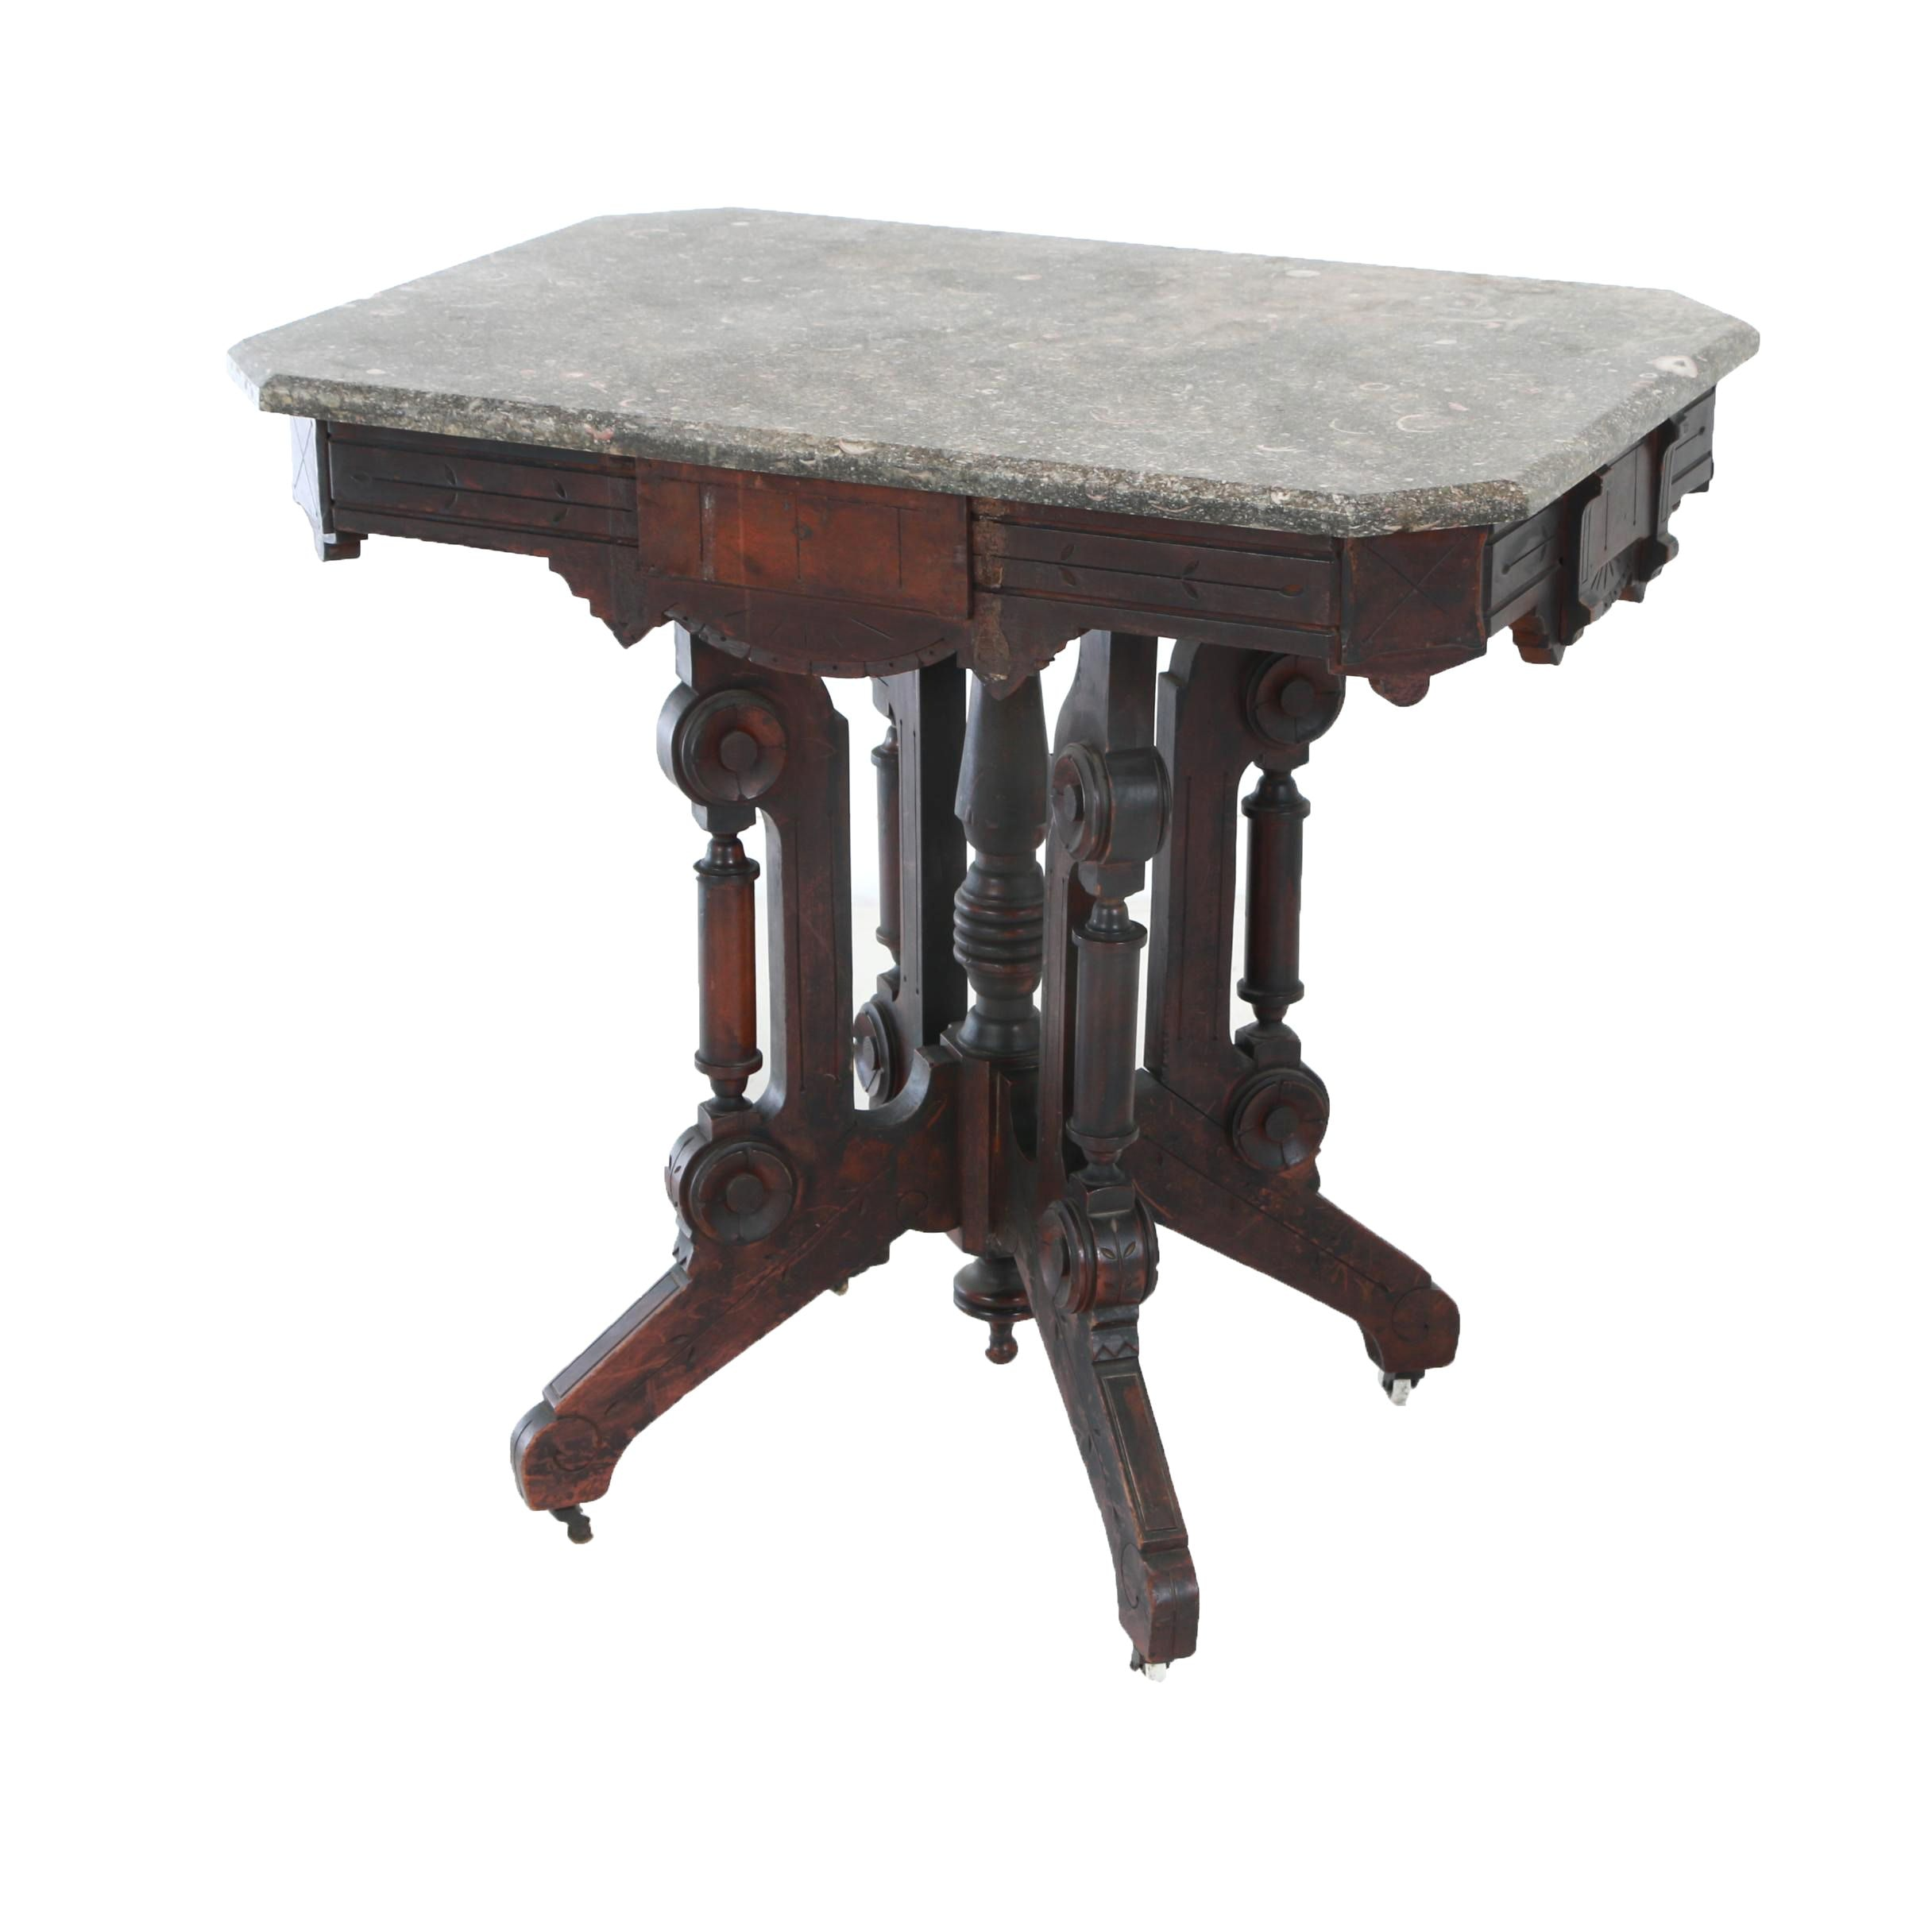 Victorian Walnut and Grey Marble Side Table, Late 19th Century